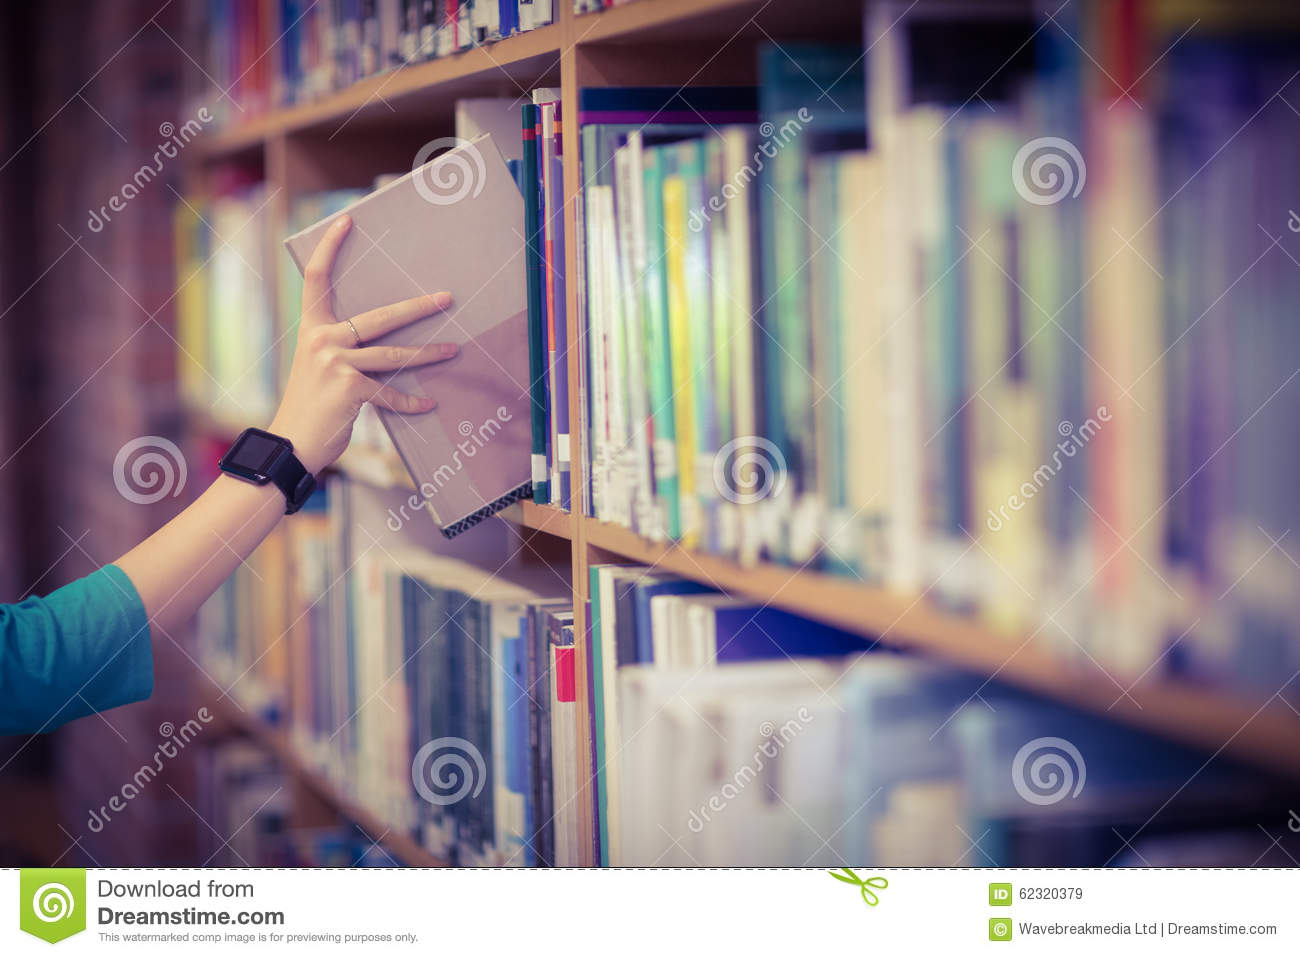 Students Hand With Smartwatch Picking Book From Bookshelf Download Preview